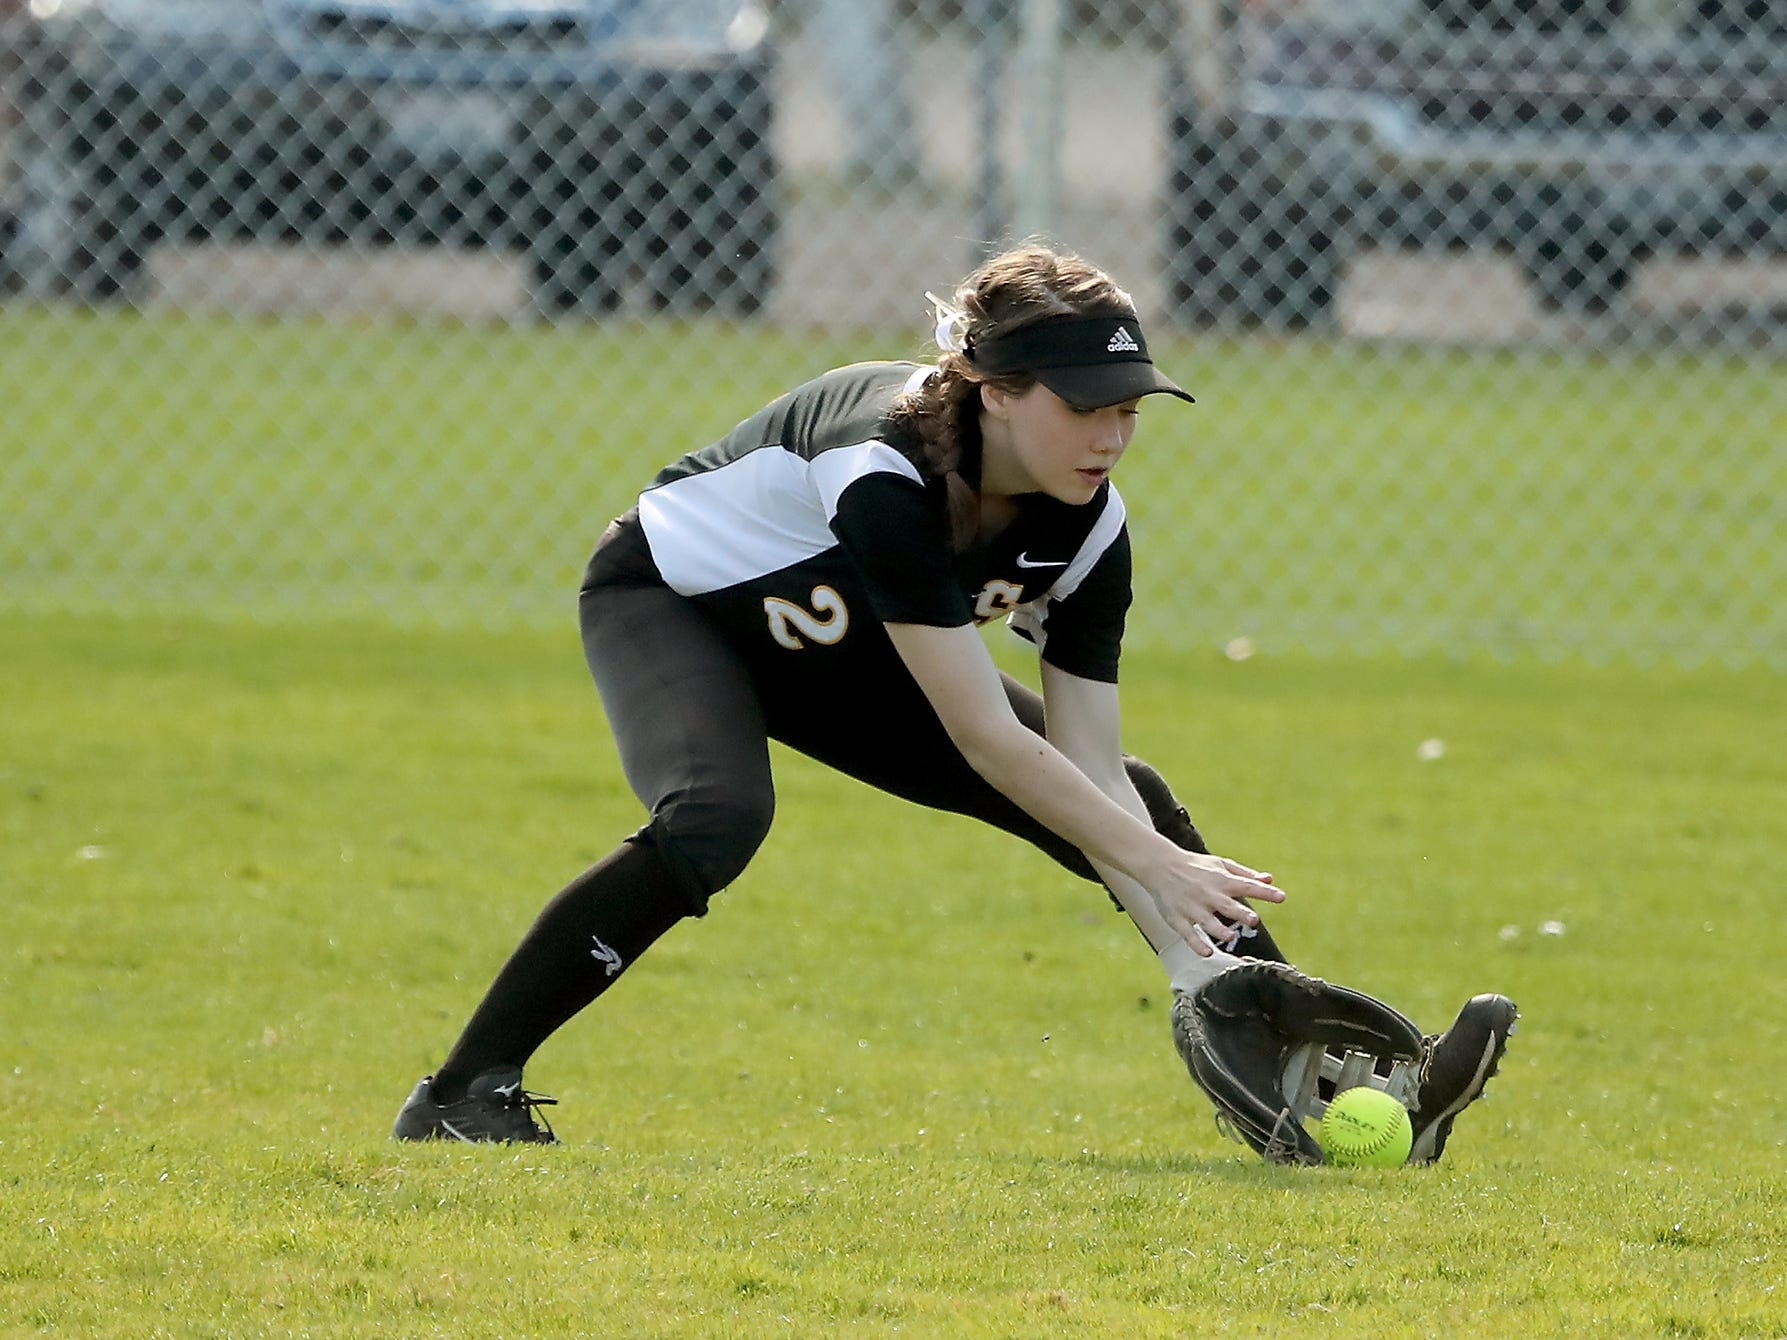 South Kitsap's Myanna Henke scoops up a ground ball against Puyallup on Tuesday, March 26, 2019.